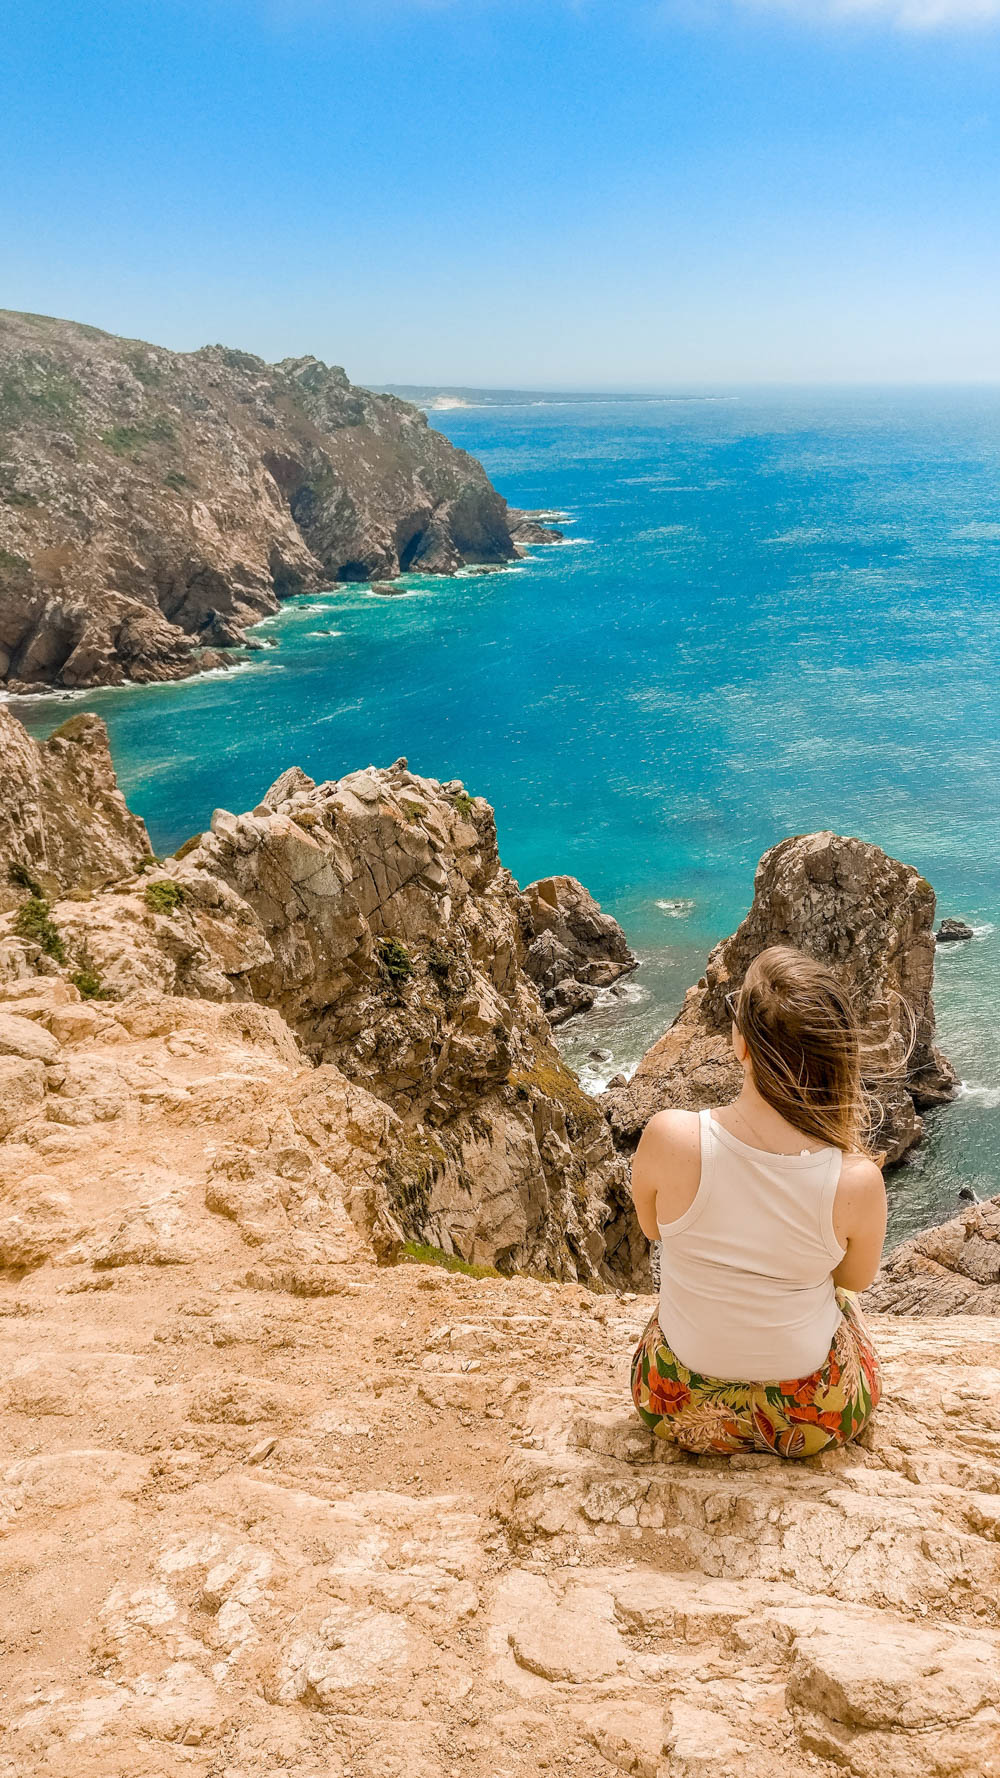 Cabo da Roca - Is a day trip to Cascais enough? - How to spend 3 days in Cascais, Portugal? | Aliz's Wonderland